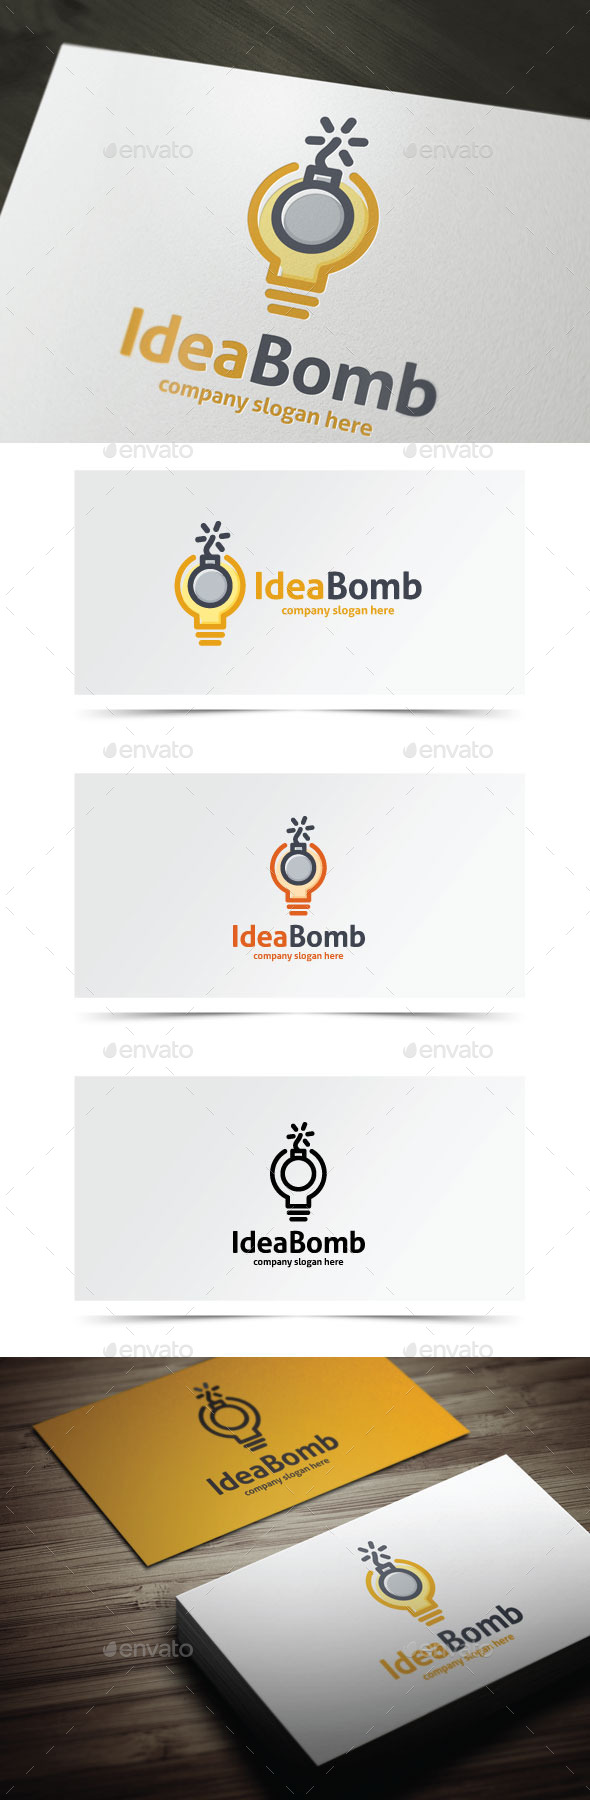 GraphicRiver Idea Bomb 9134523